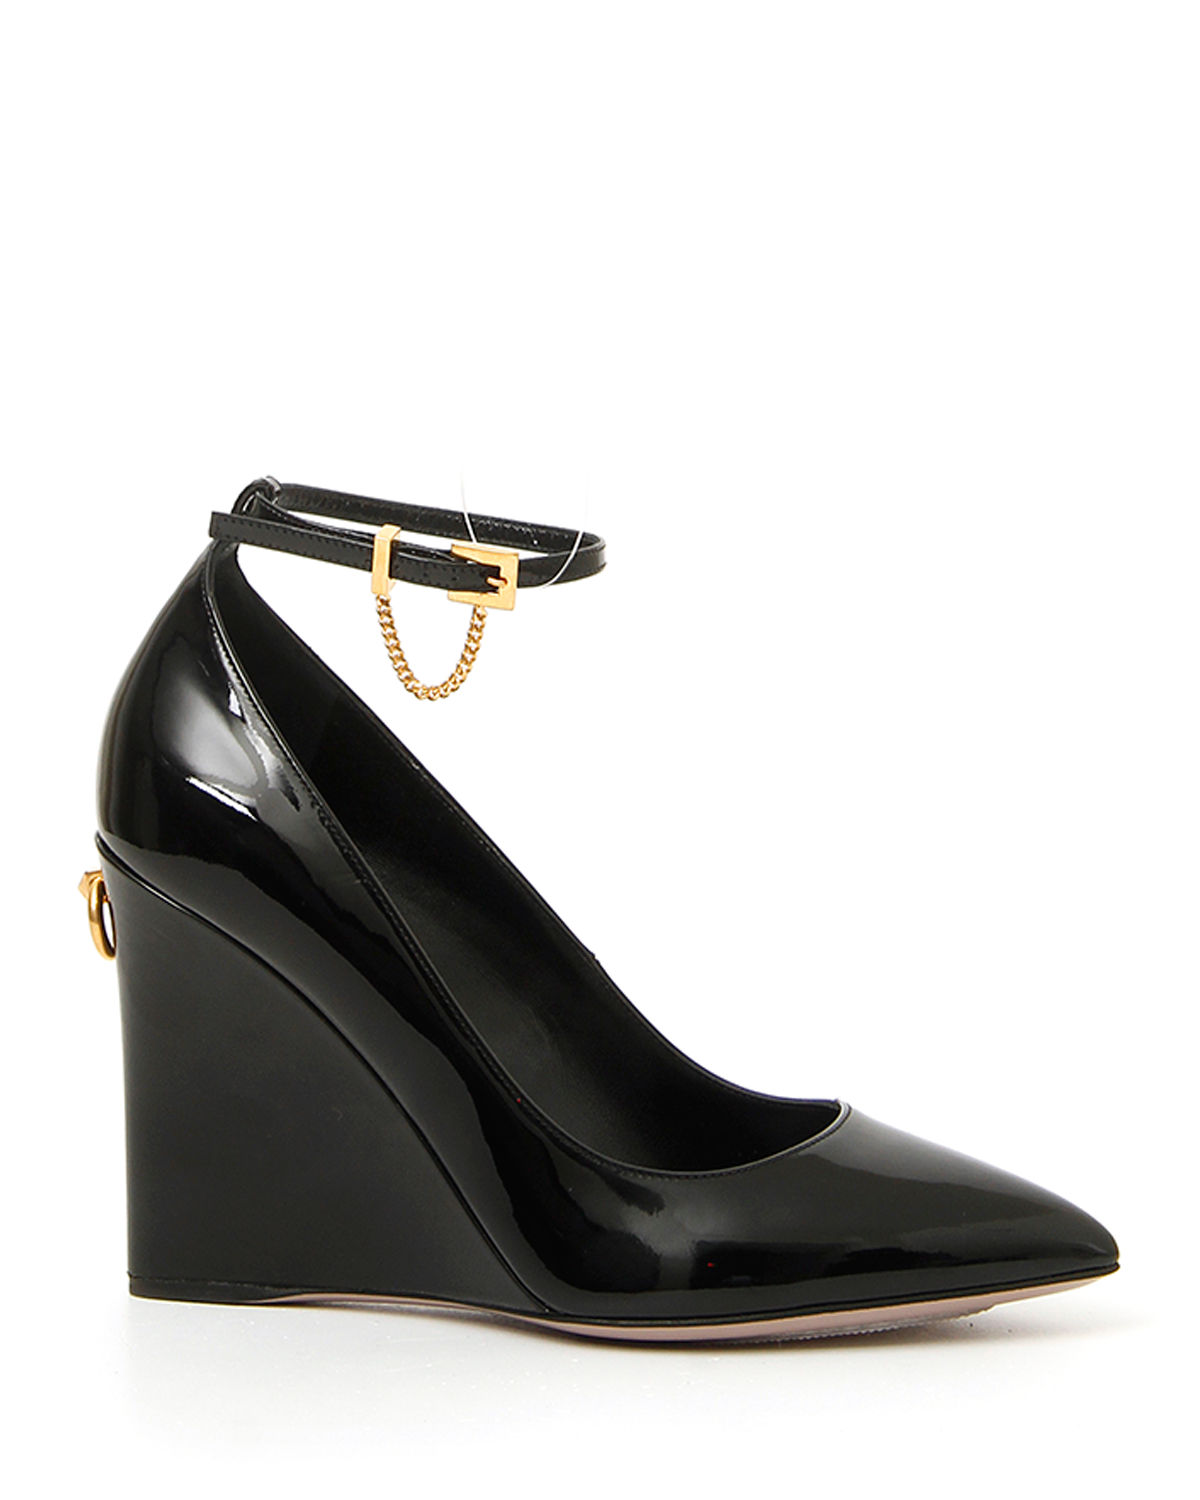 Ringstud Mary Jane Pumps by Valentino Garavani